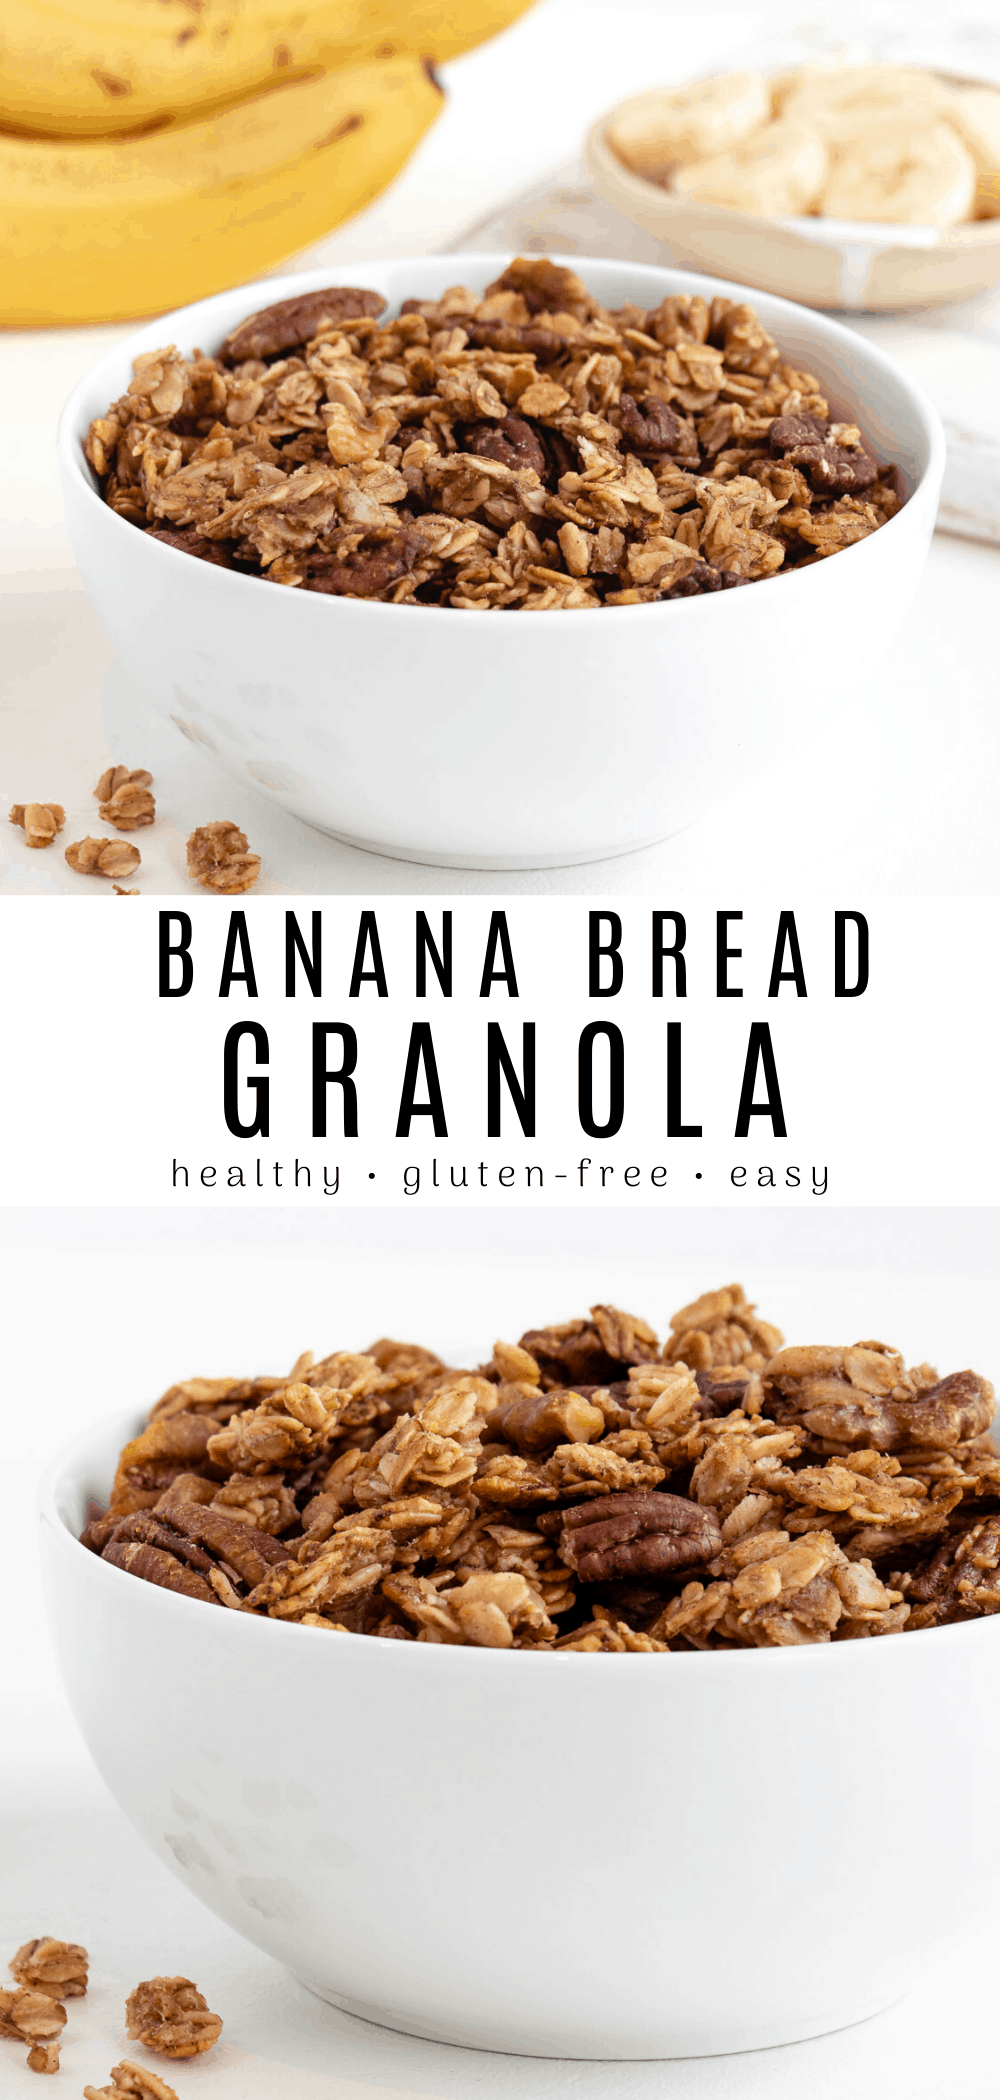 Banana Bread Granola | Recipe in 2020 (With images ...